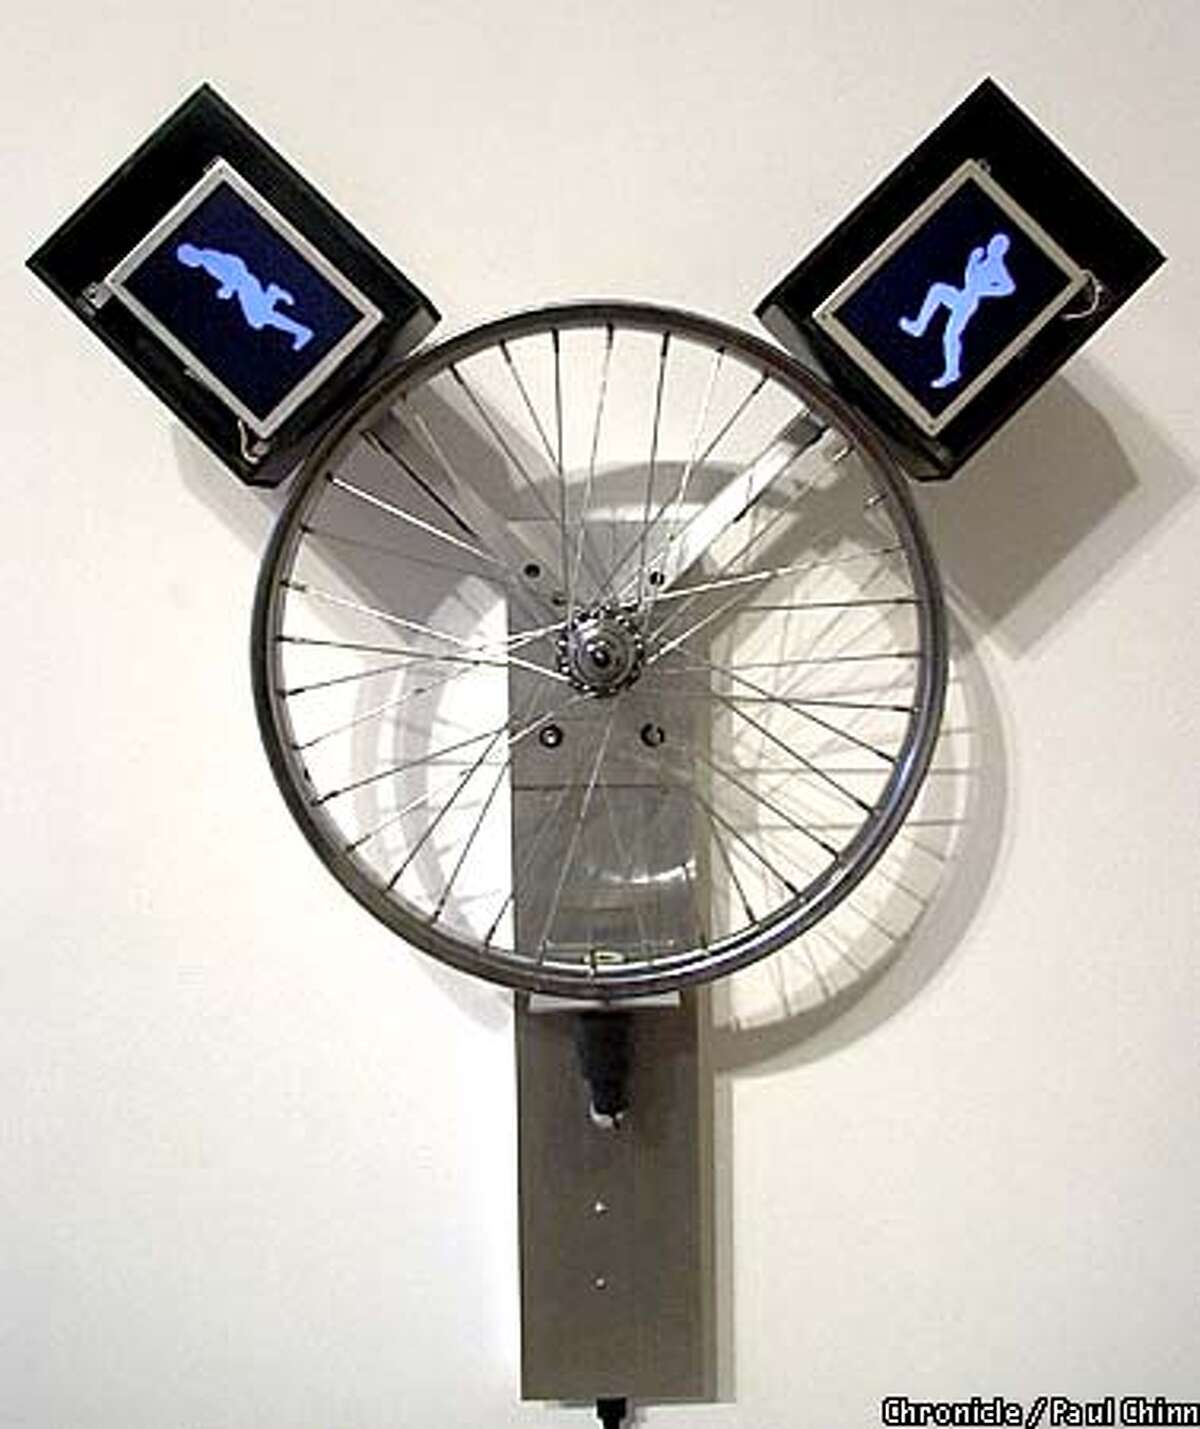 Among the sculptures displayed at the Haines Gallery is Alan Rath's spinning bicycle wheel withtwo video screens showing a human running in place. PAUL CHINN/S.F. CHRONICLE